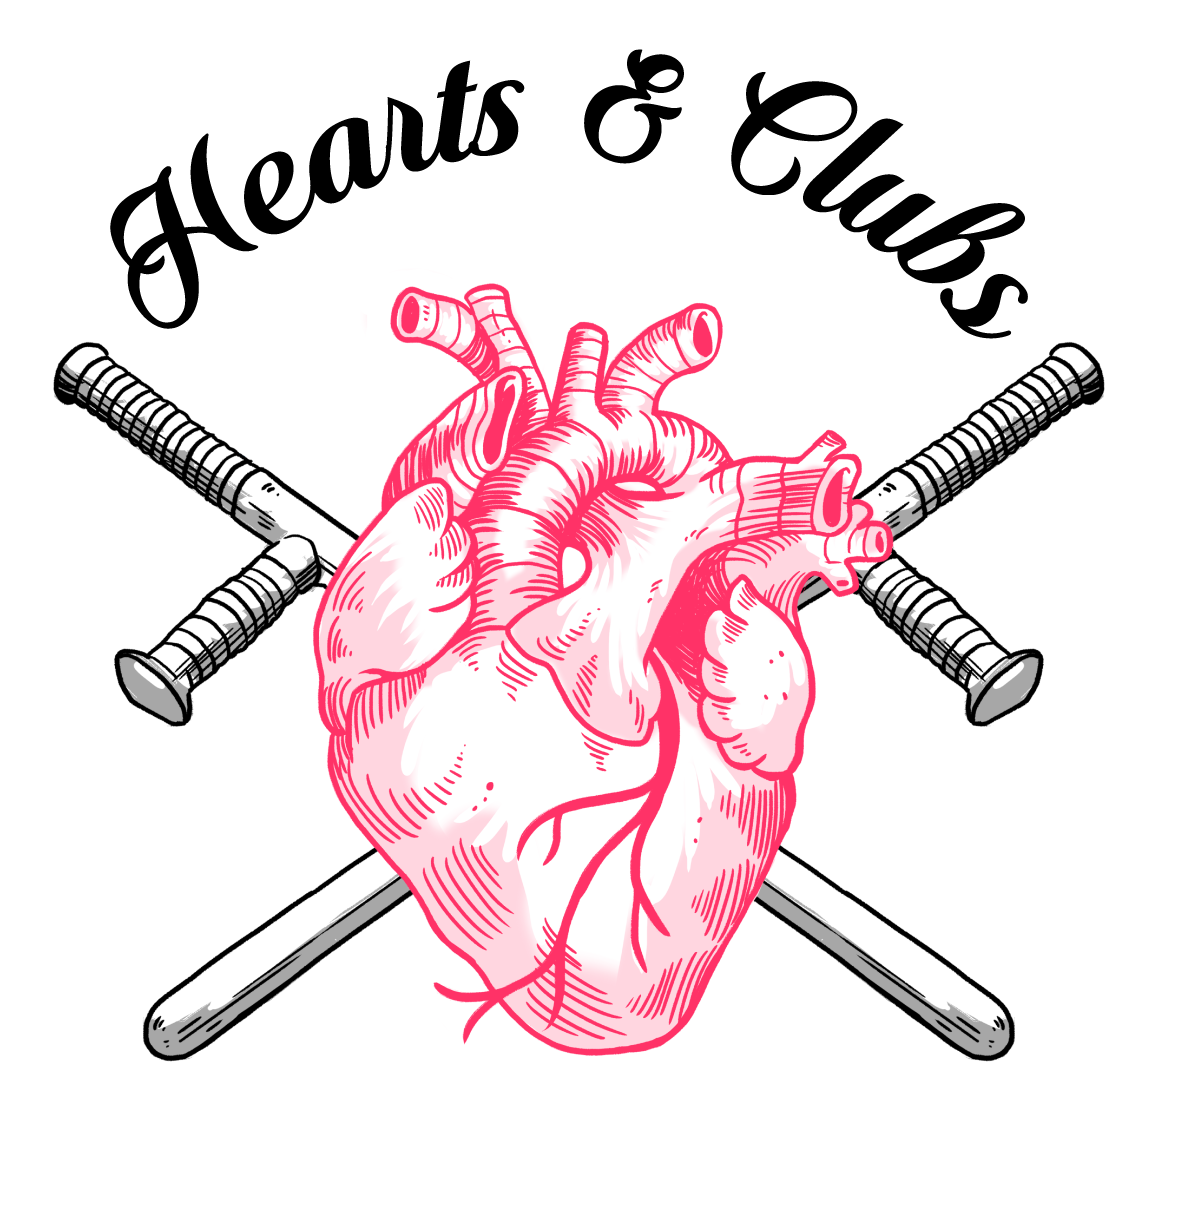 Hearts & Clubs